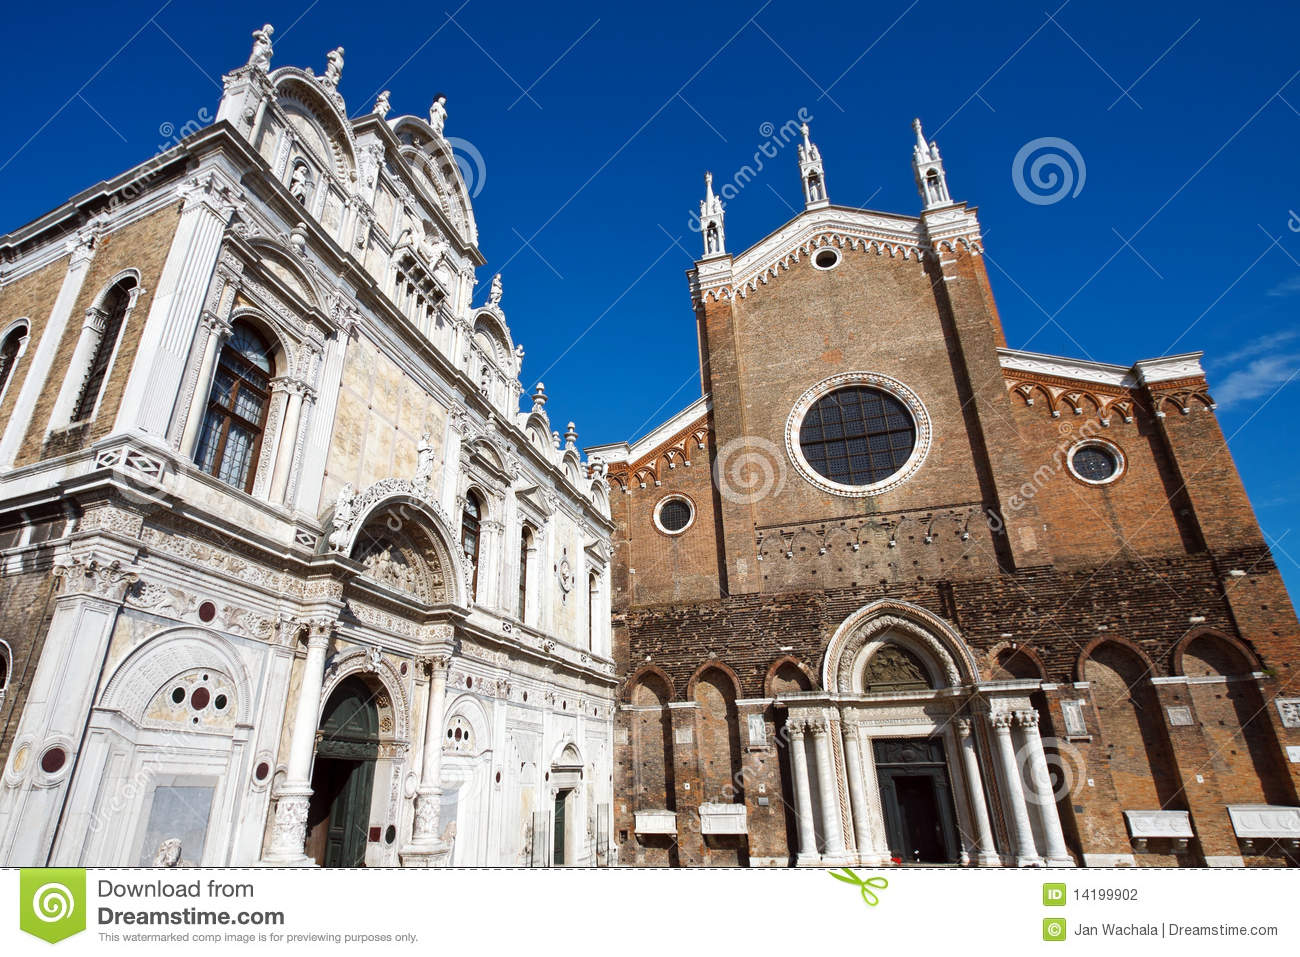 venetian architecture stock photography image 14199902